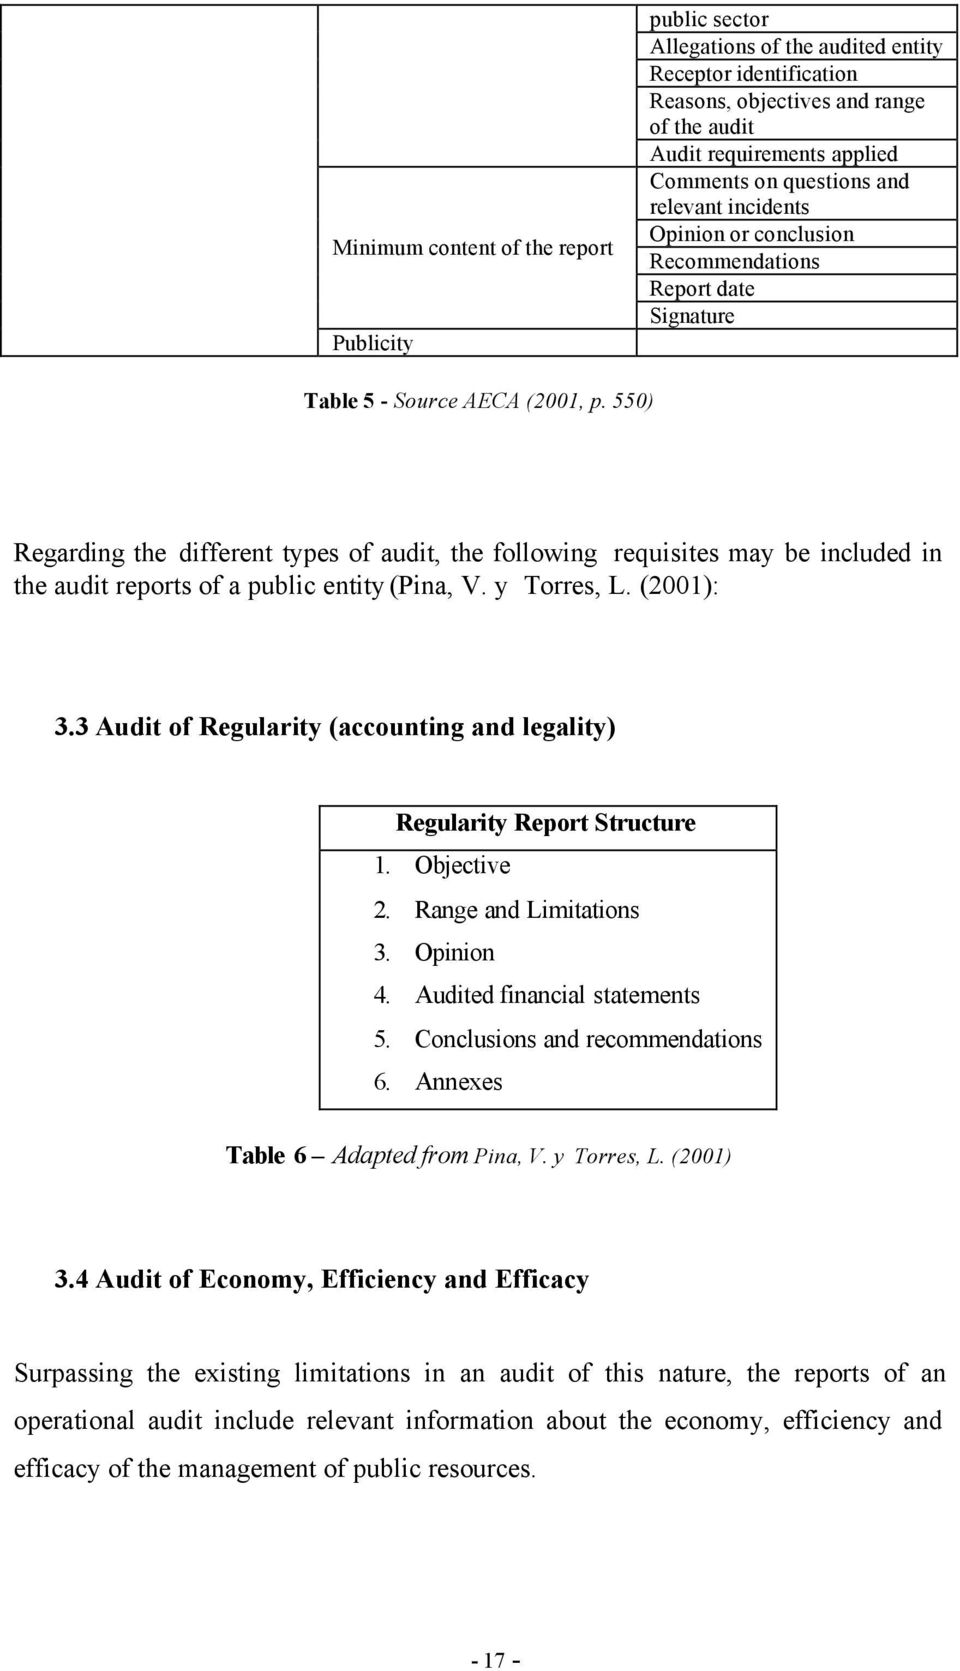 550) Regarding the different types of audit, the following requisites may be included in the audit reports of a public entity (Pina, V. y Torres, L. (2001): 3.